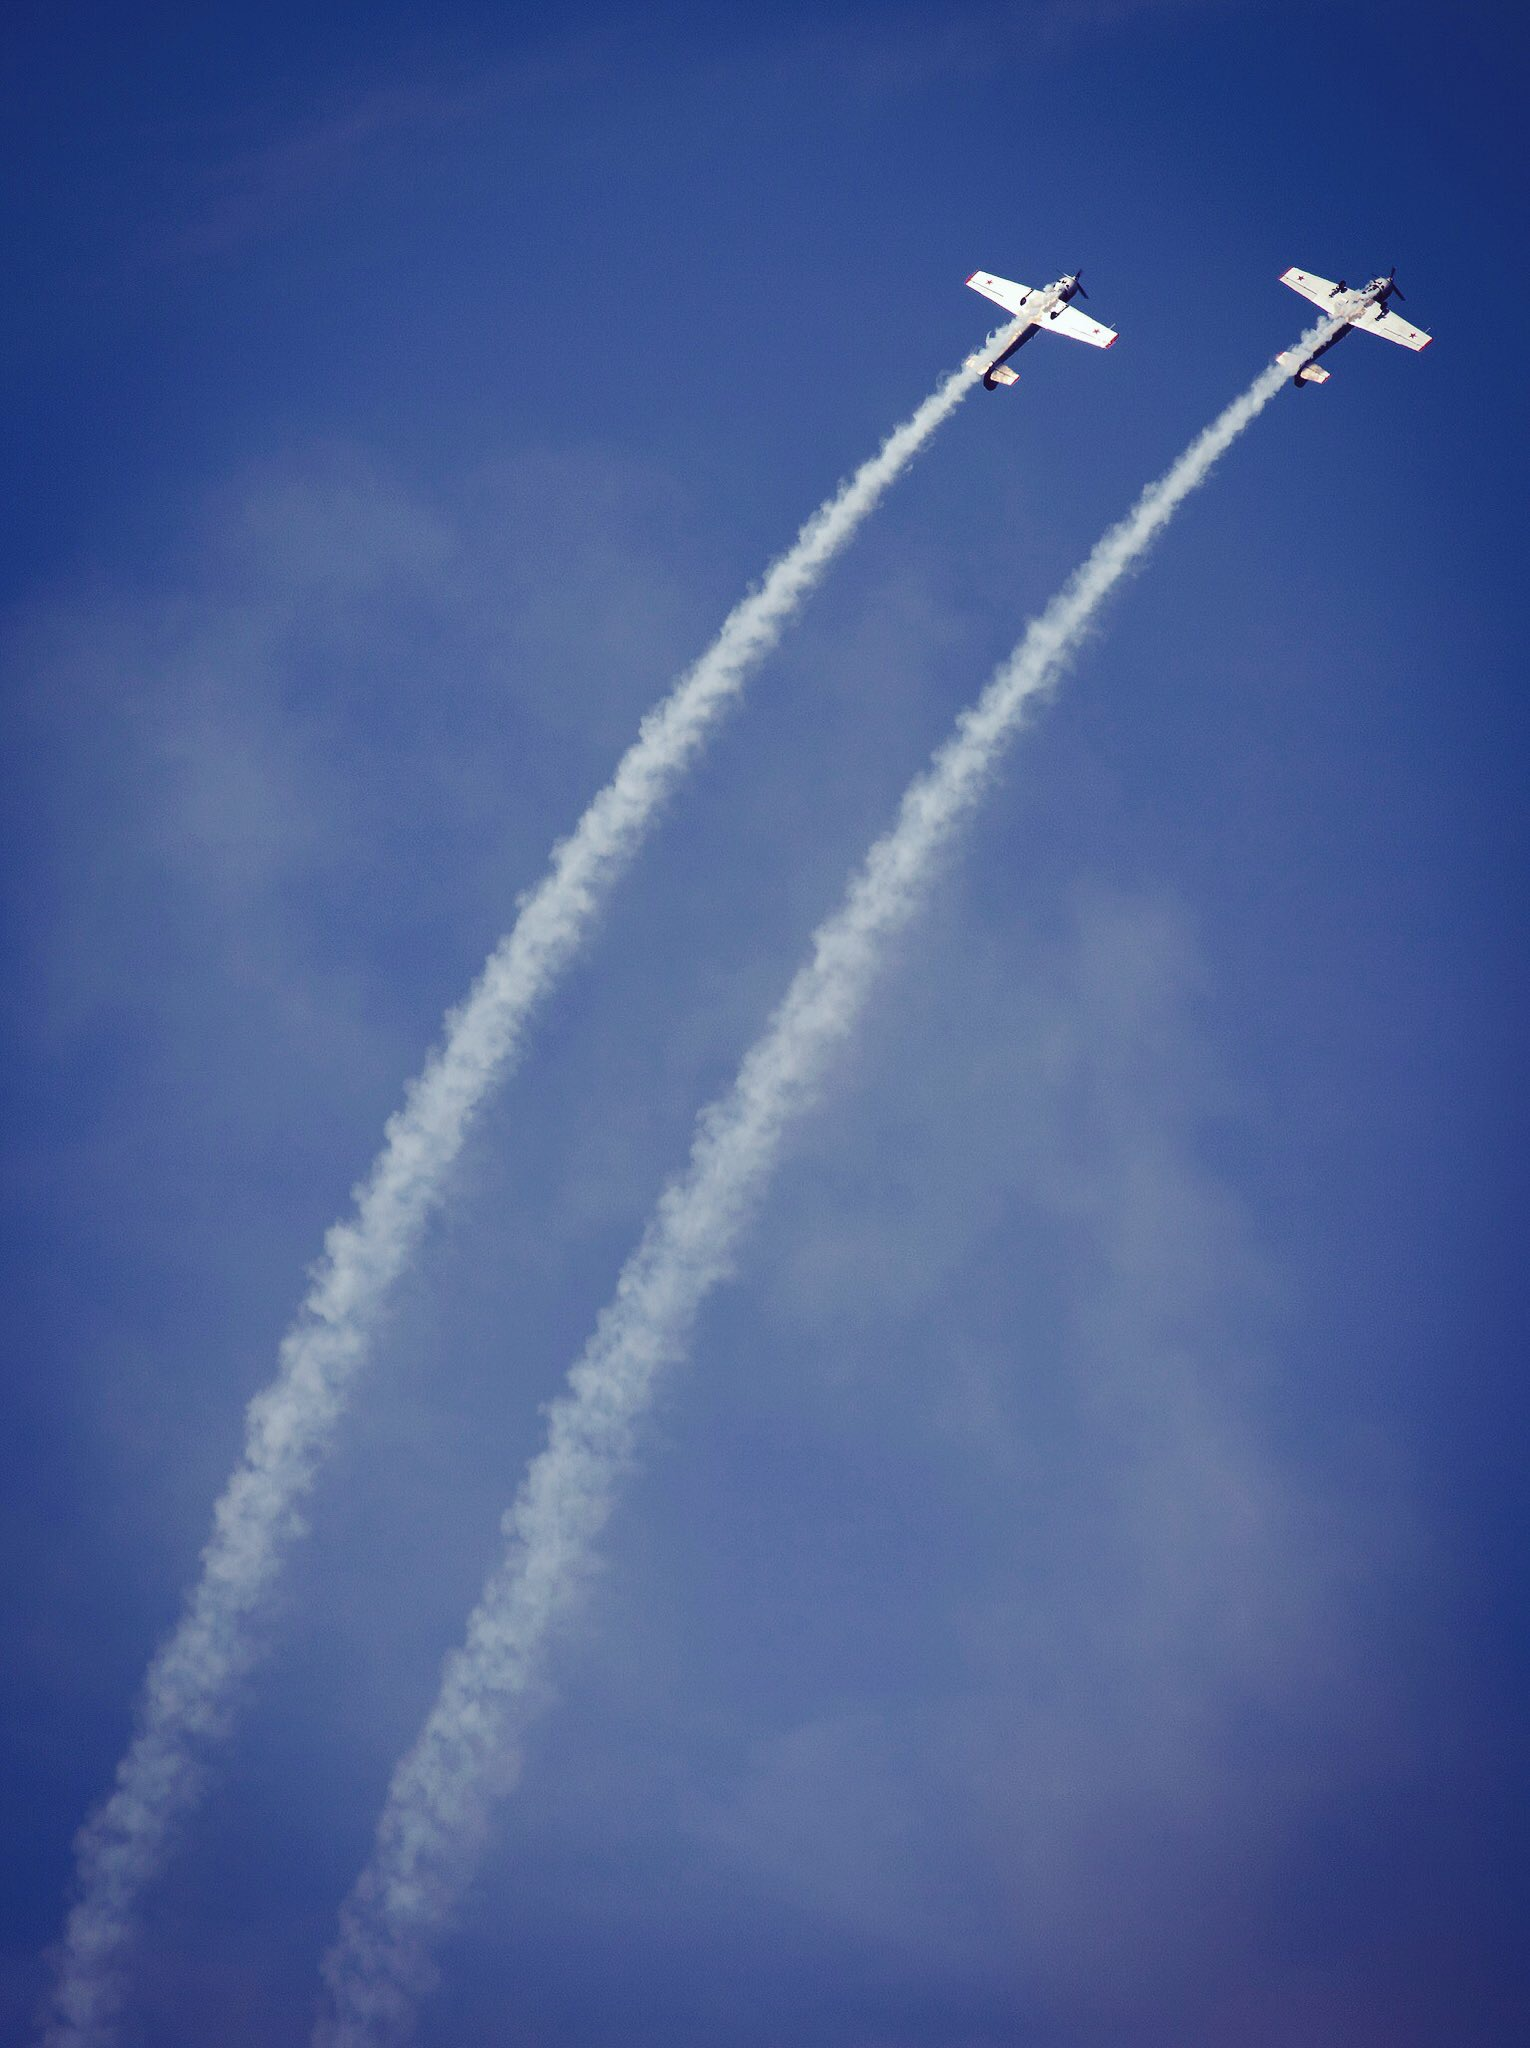 Torbay Airshow Contrails